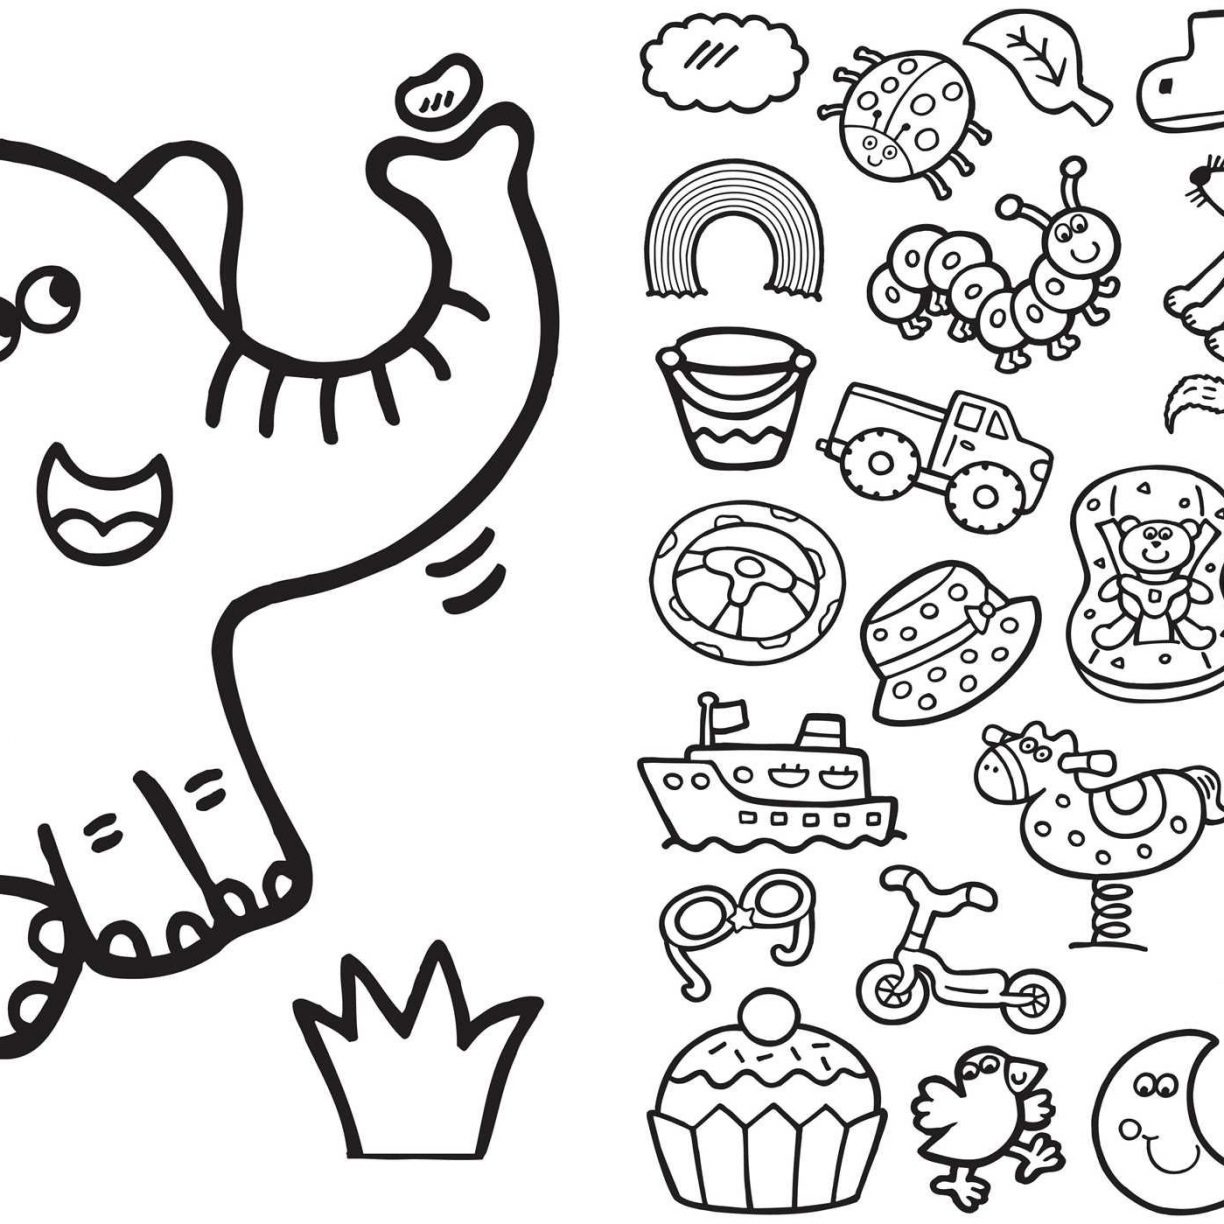 Walmart Coloring Pages